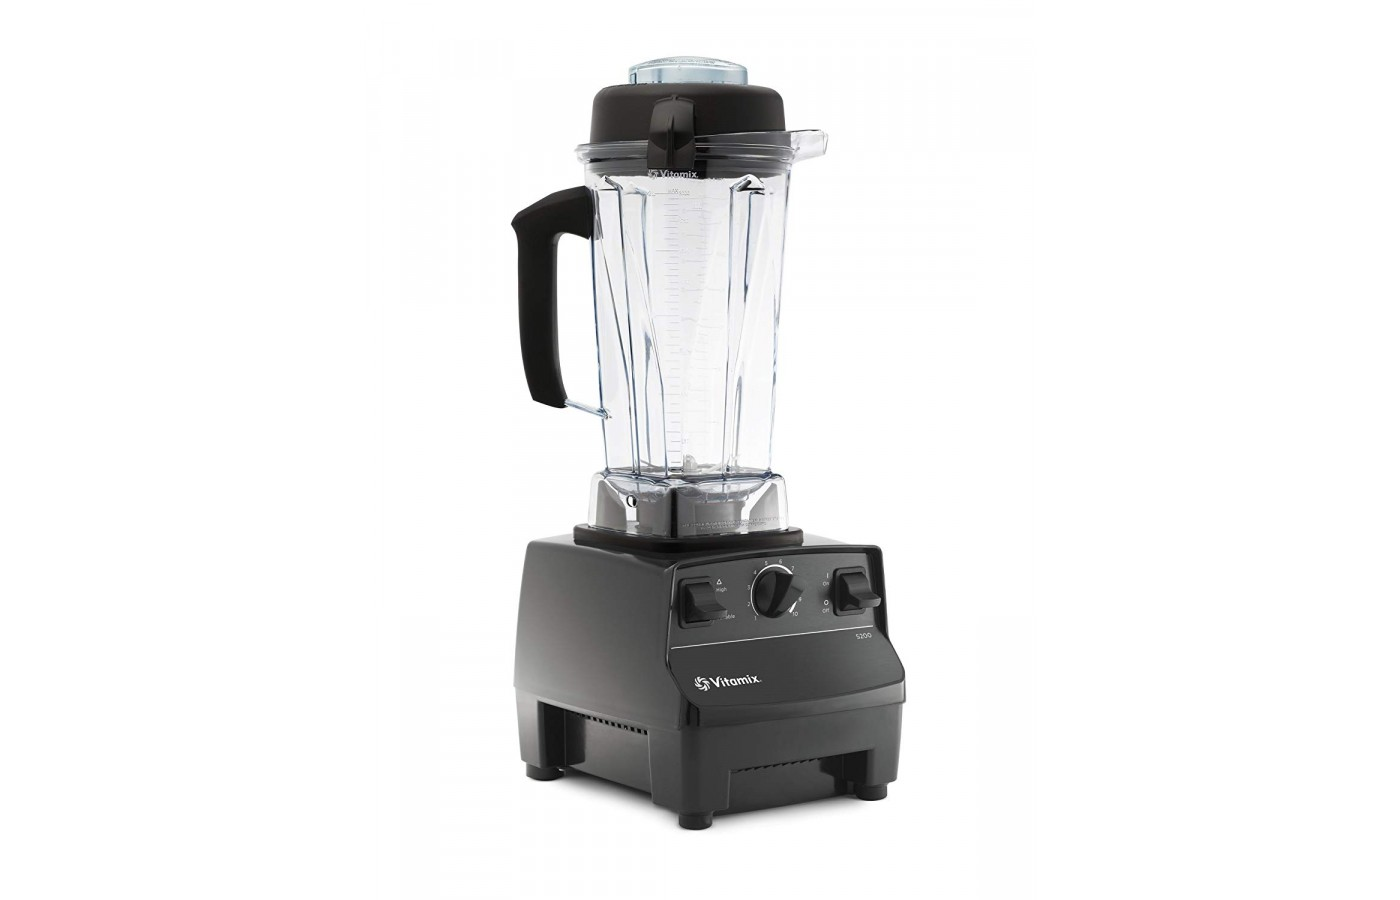 There are many different foods you can make with this blender.